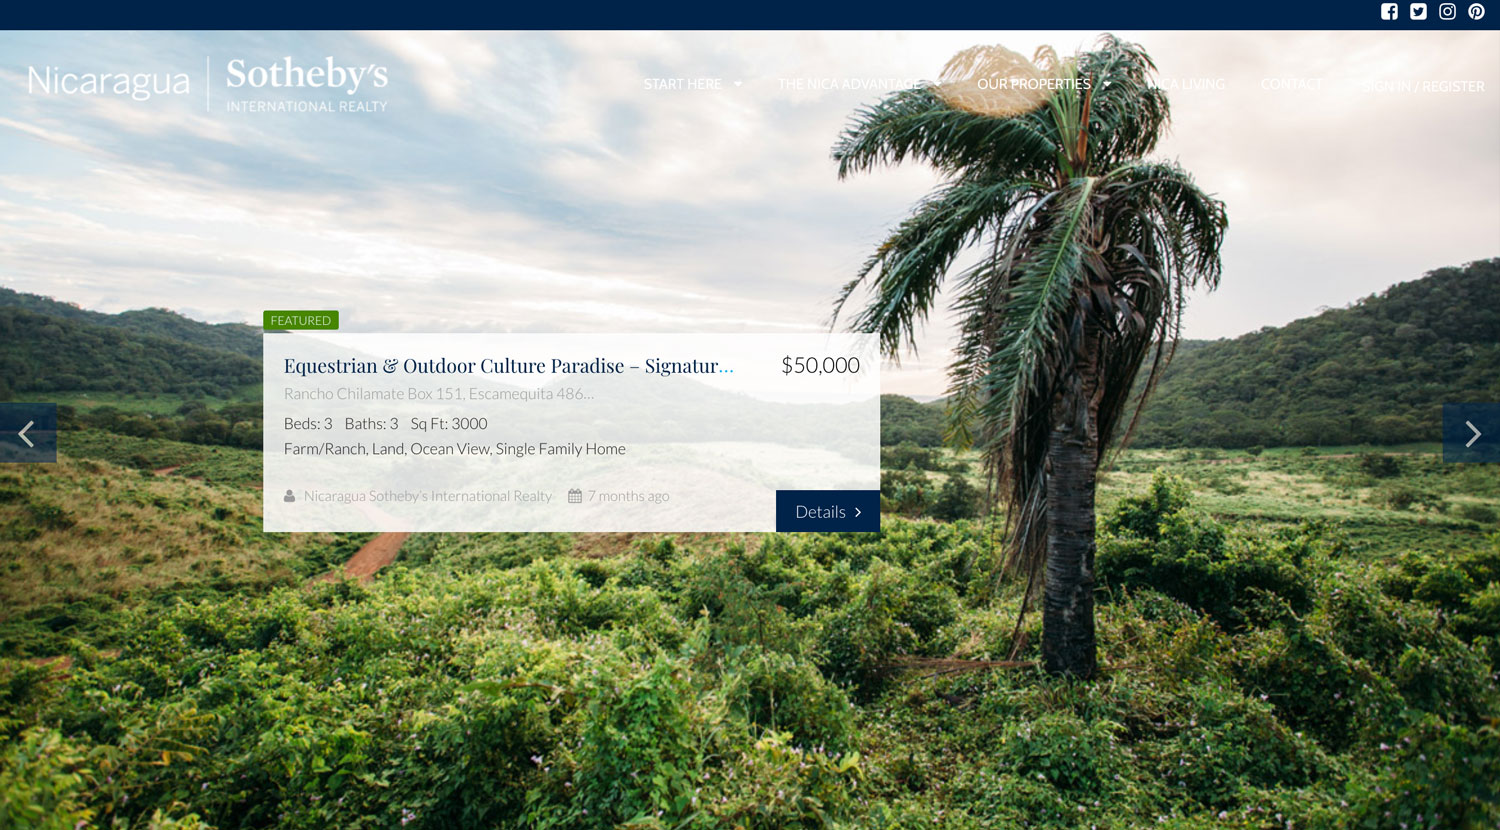 Nicaragua Sotheby's Purchase Paradise